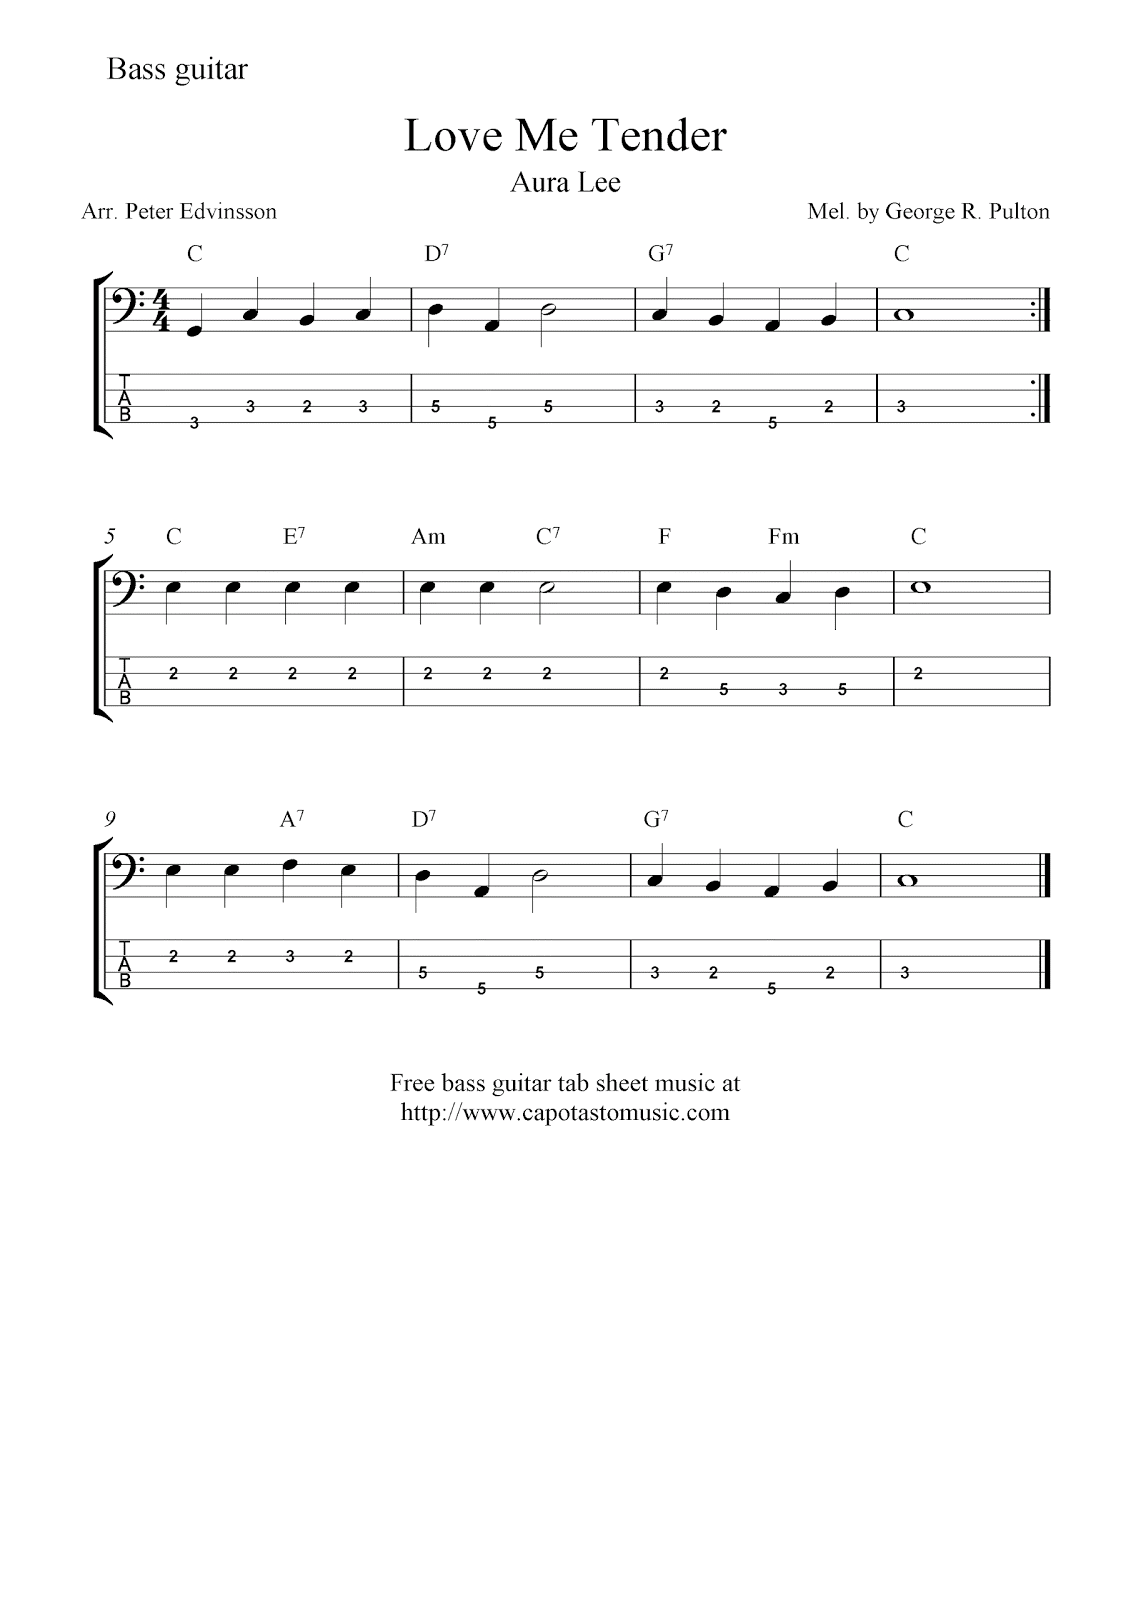 Free bass guitar tab sheet music, Love Me Tender (Aura Lee)